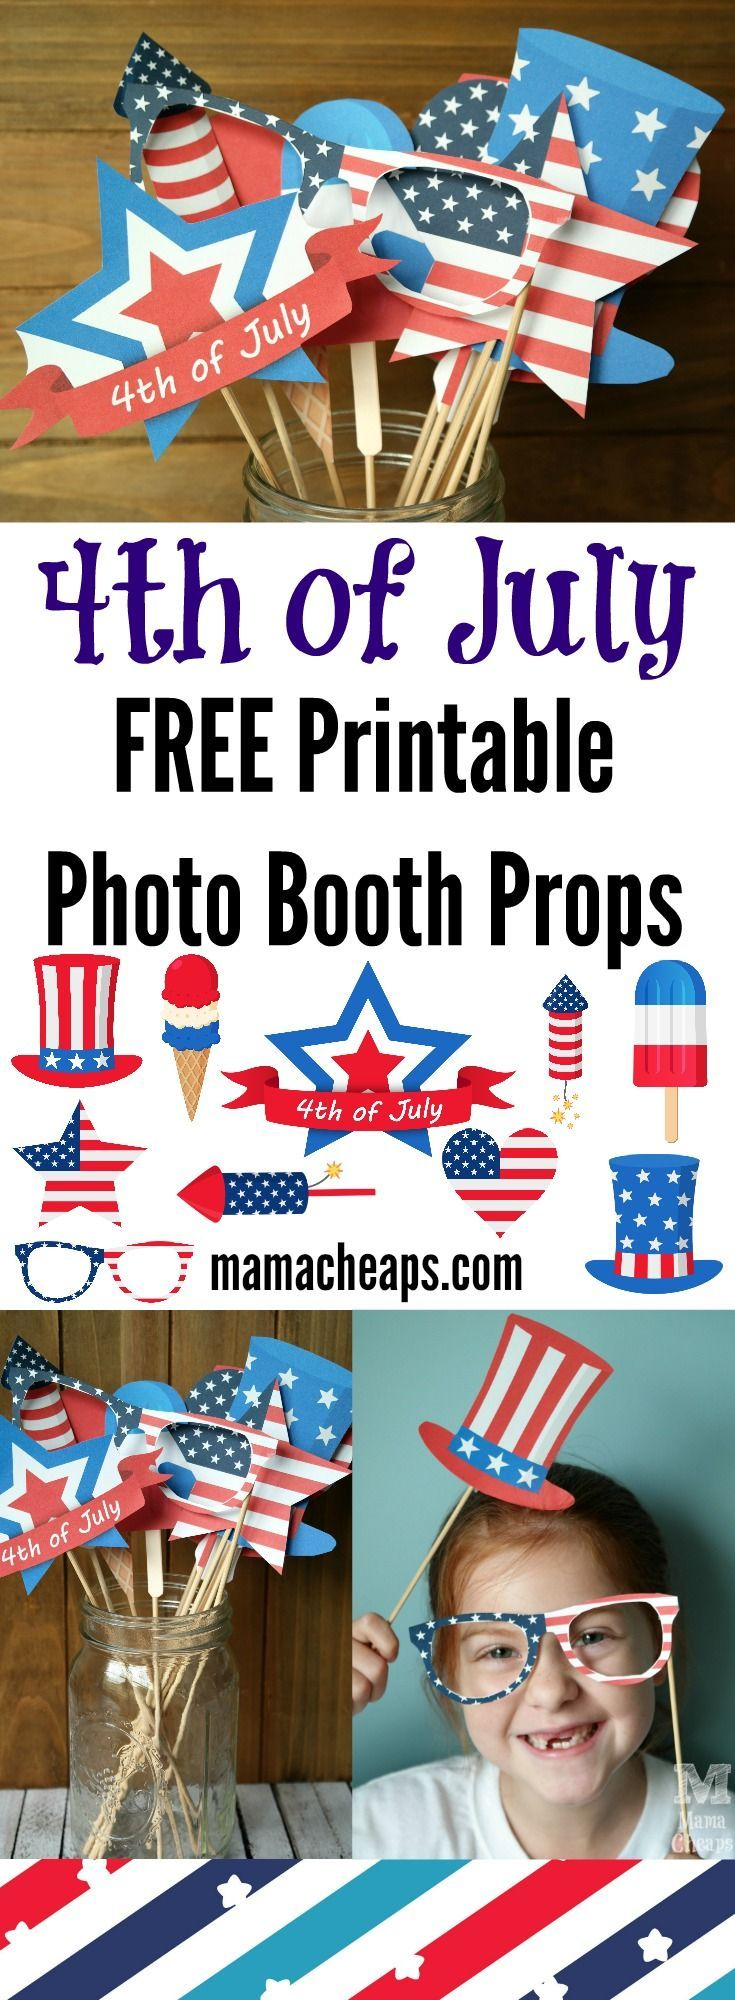 4th of July FREE Printable Photo Booth Props - print and cut these FREE patriotic photo booth props.  They'll be the hit of your holiday BBQ!  More free printables at MamaCheaps.com!